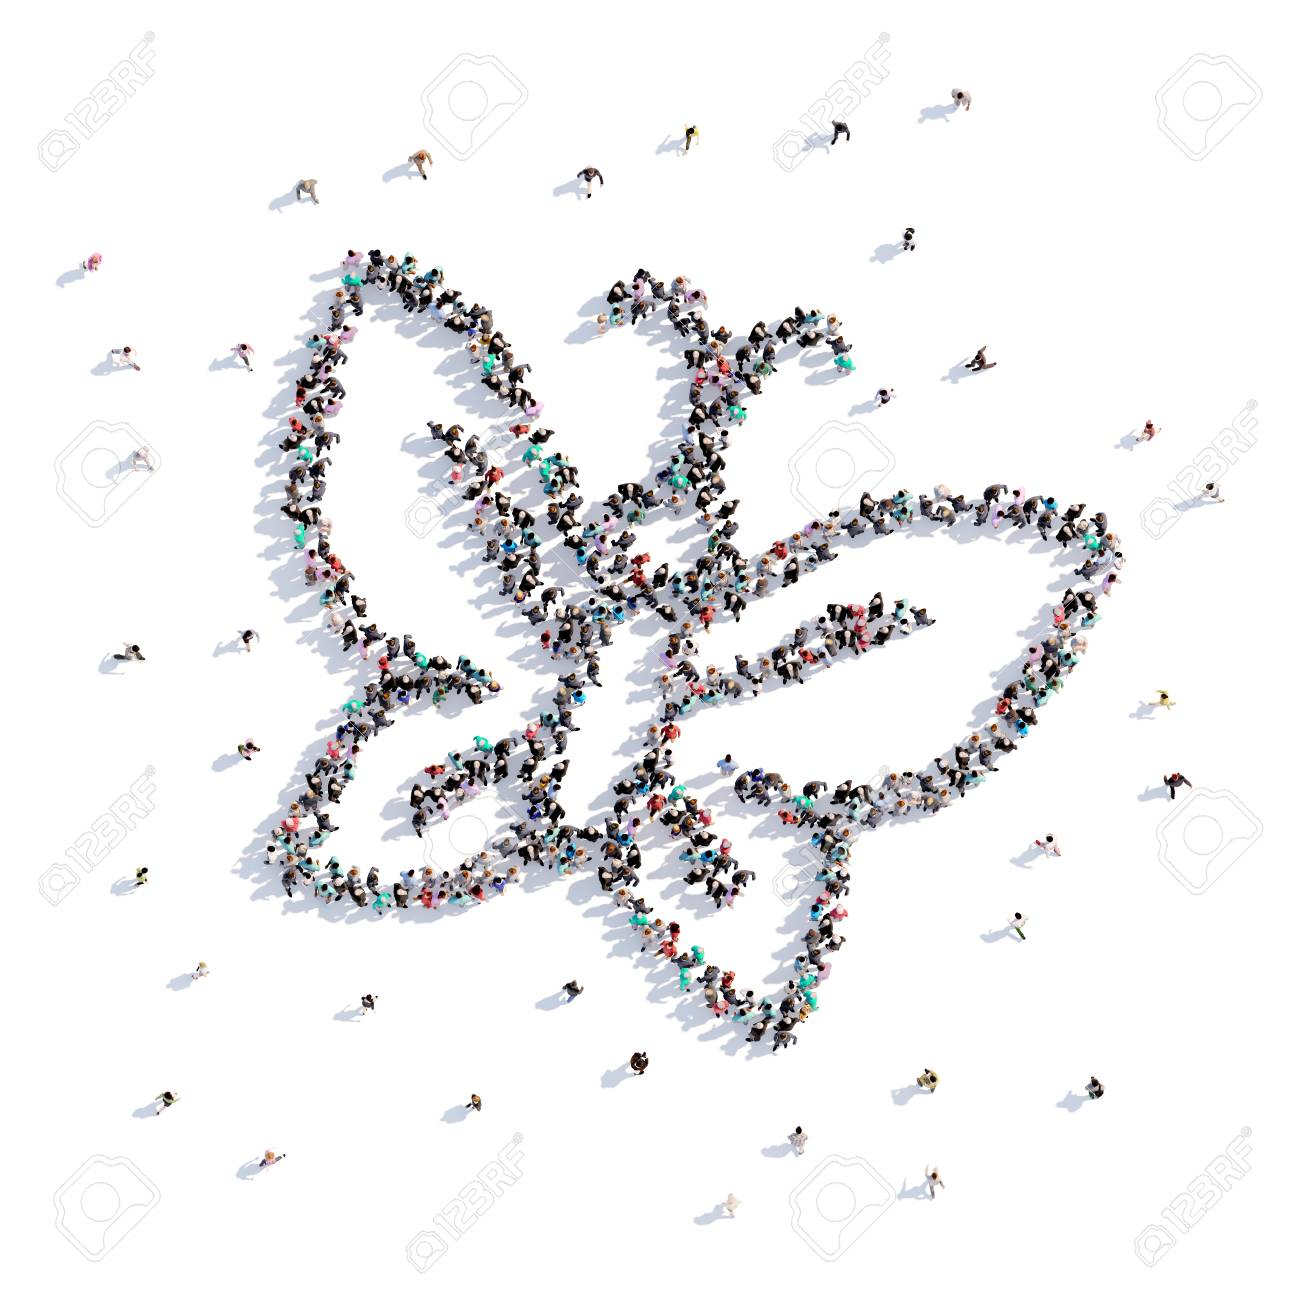 A Lot Of People Form Butterfly Childrens Drawing 3d Rendering